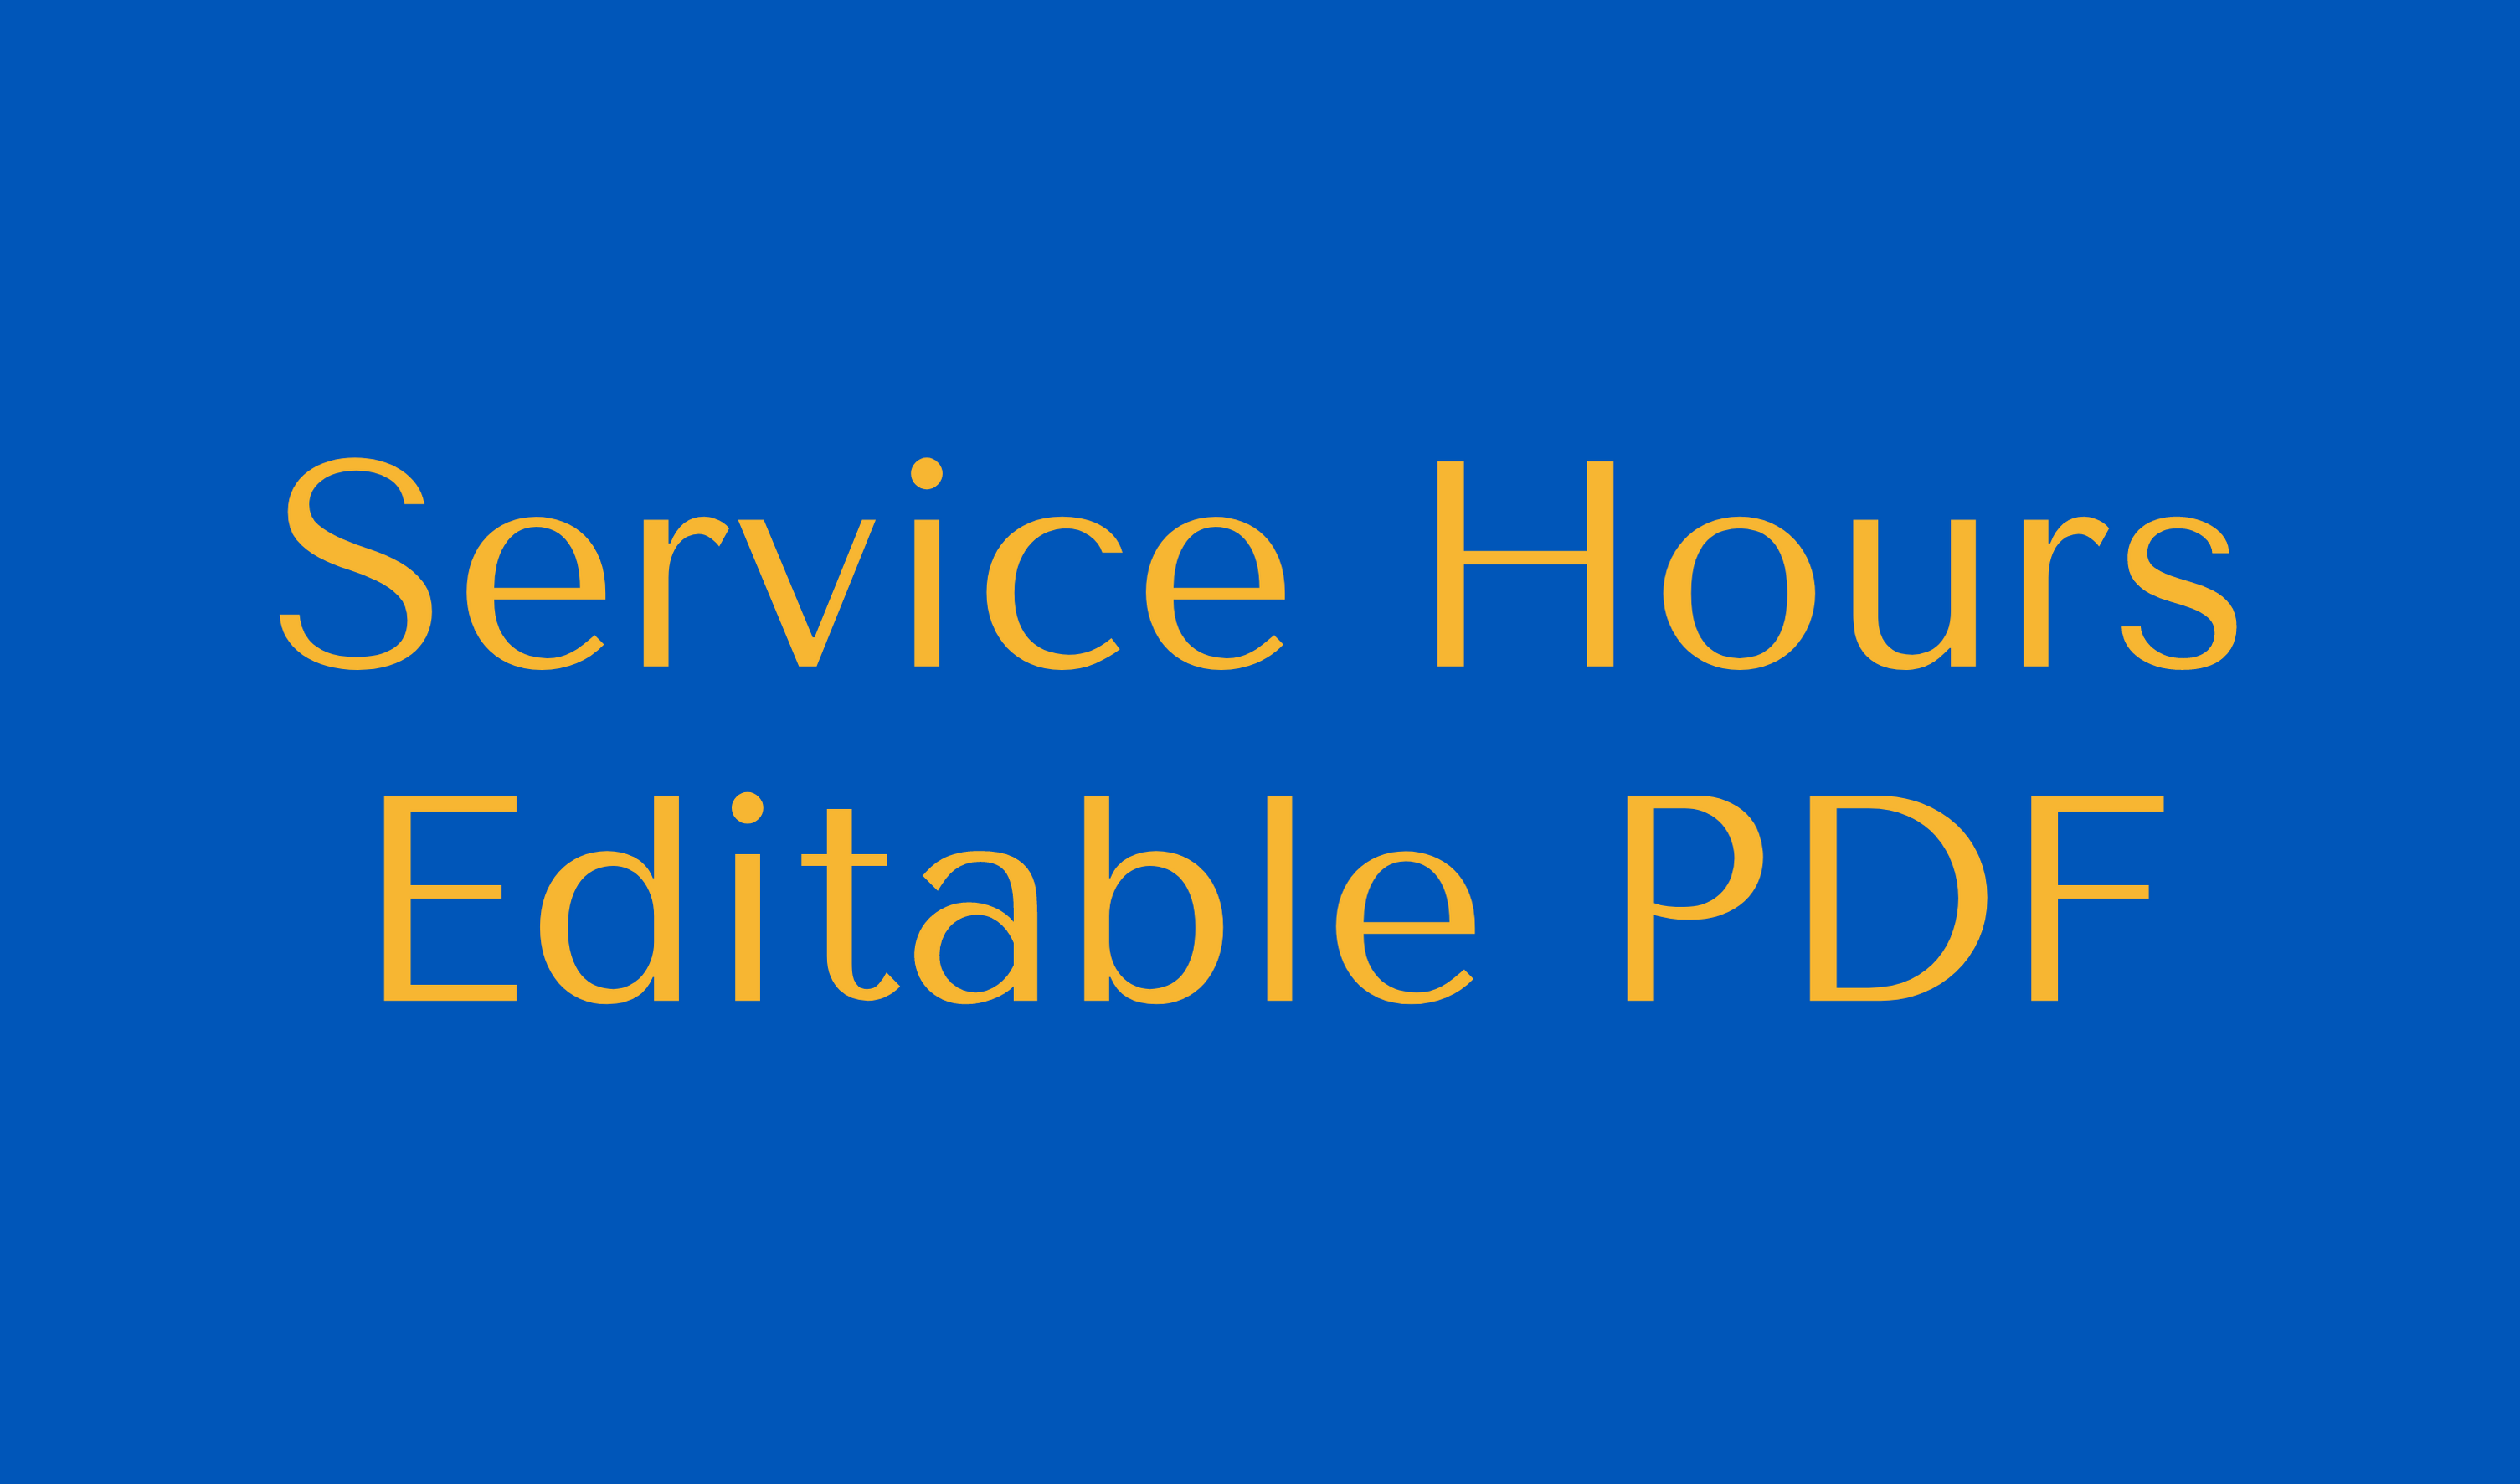 Service Hours Editable PDF Button